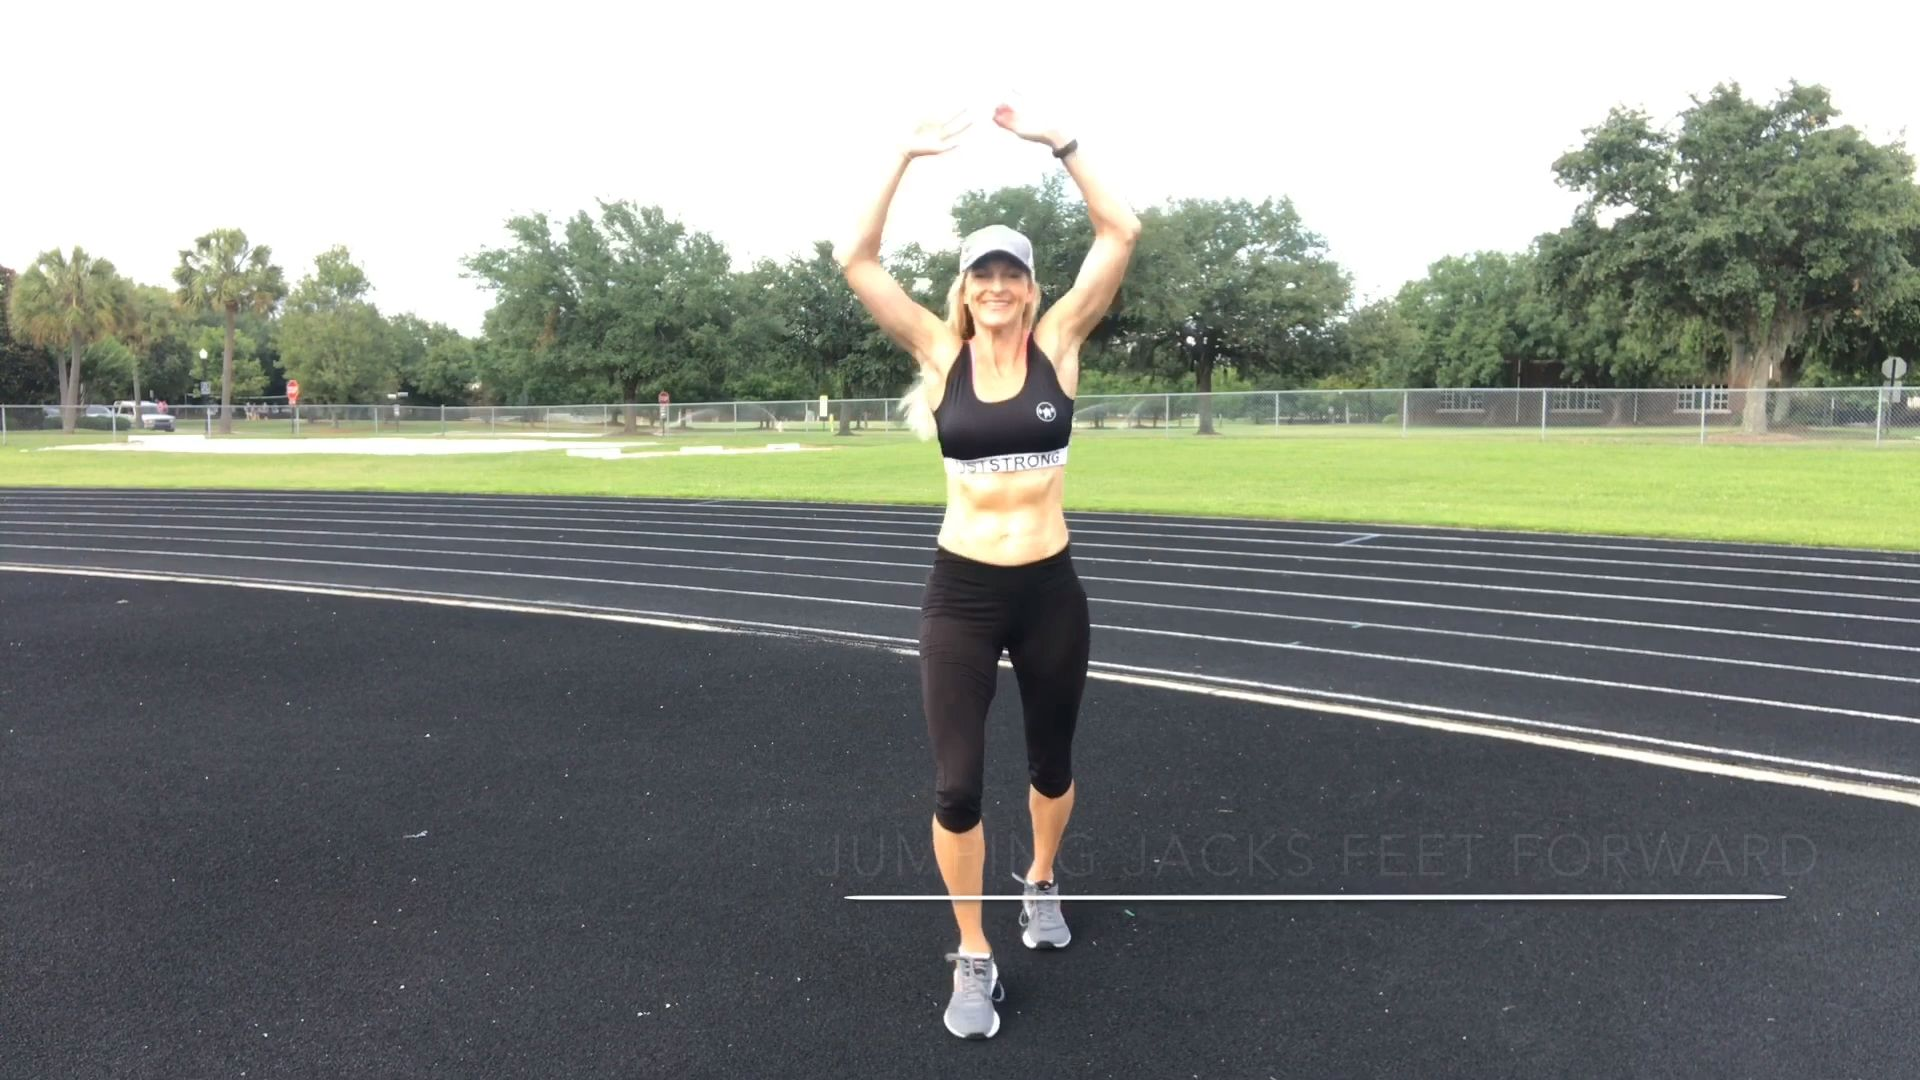 WOW (Workout of the Week!) 15 min HIIT